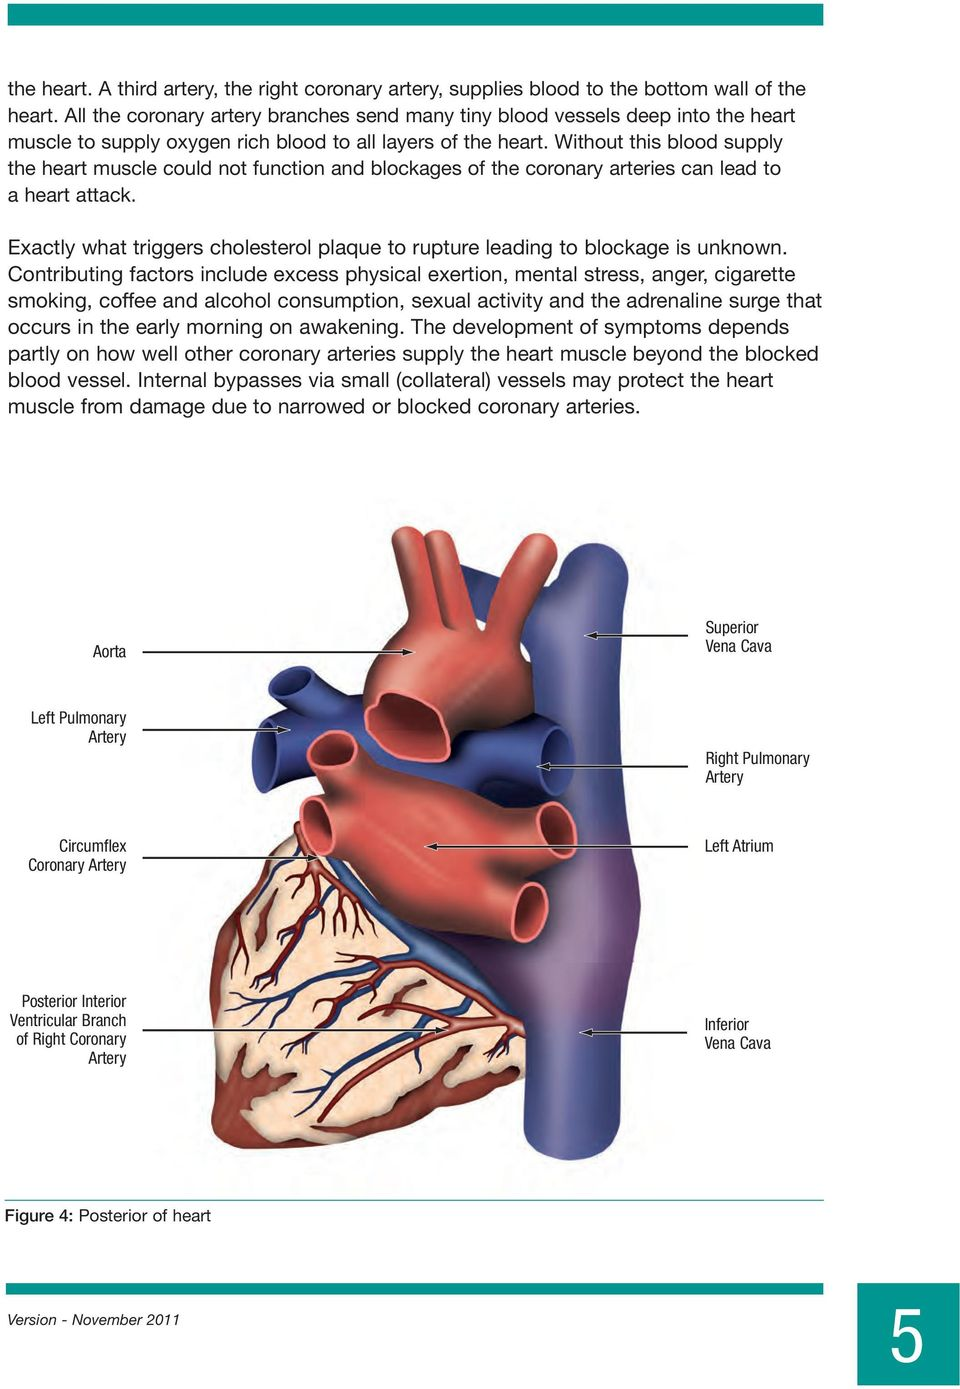 Without this blood supply the heart muscle could not function and blockages of the coronary arteries can lead to a heart attack.